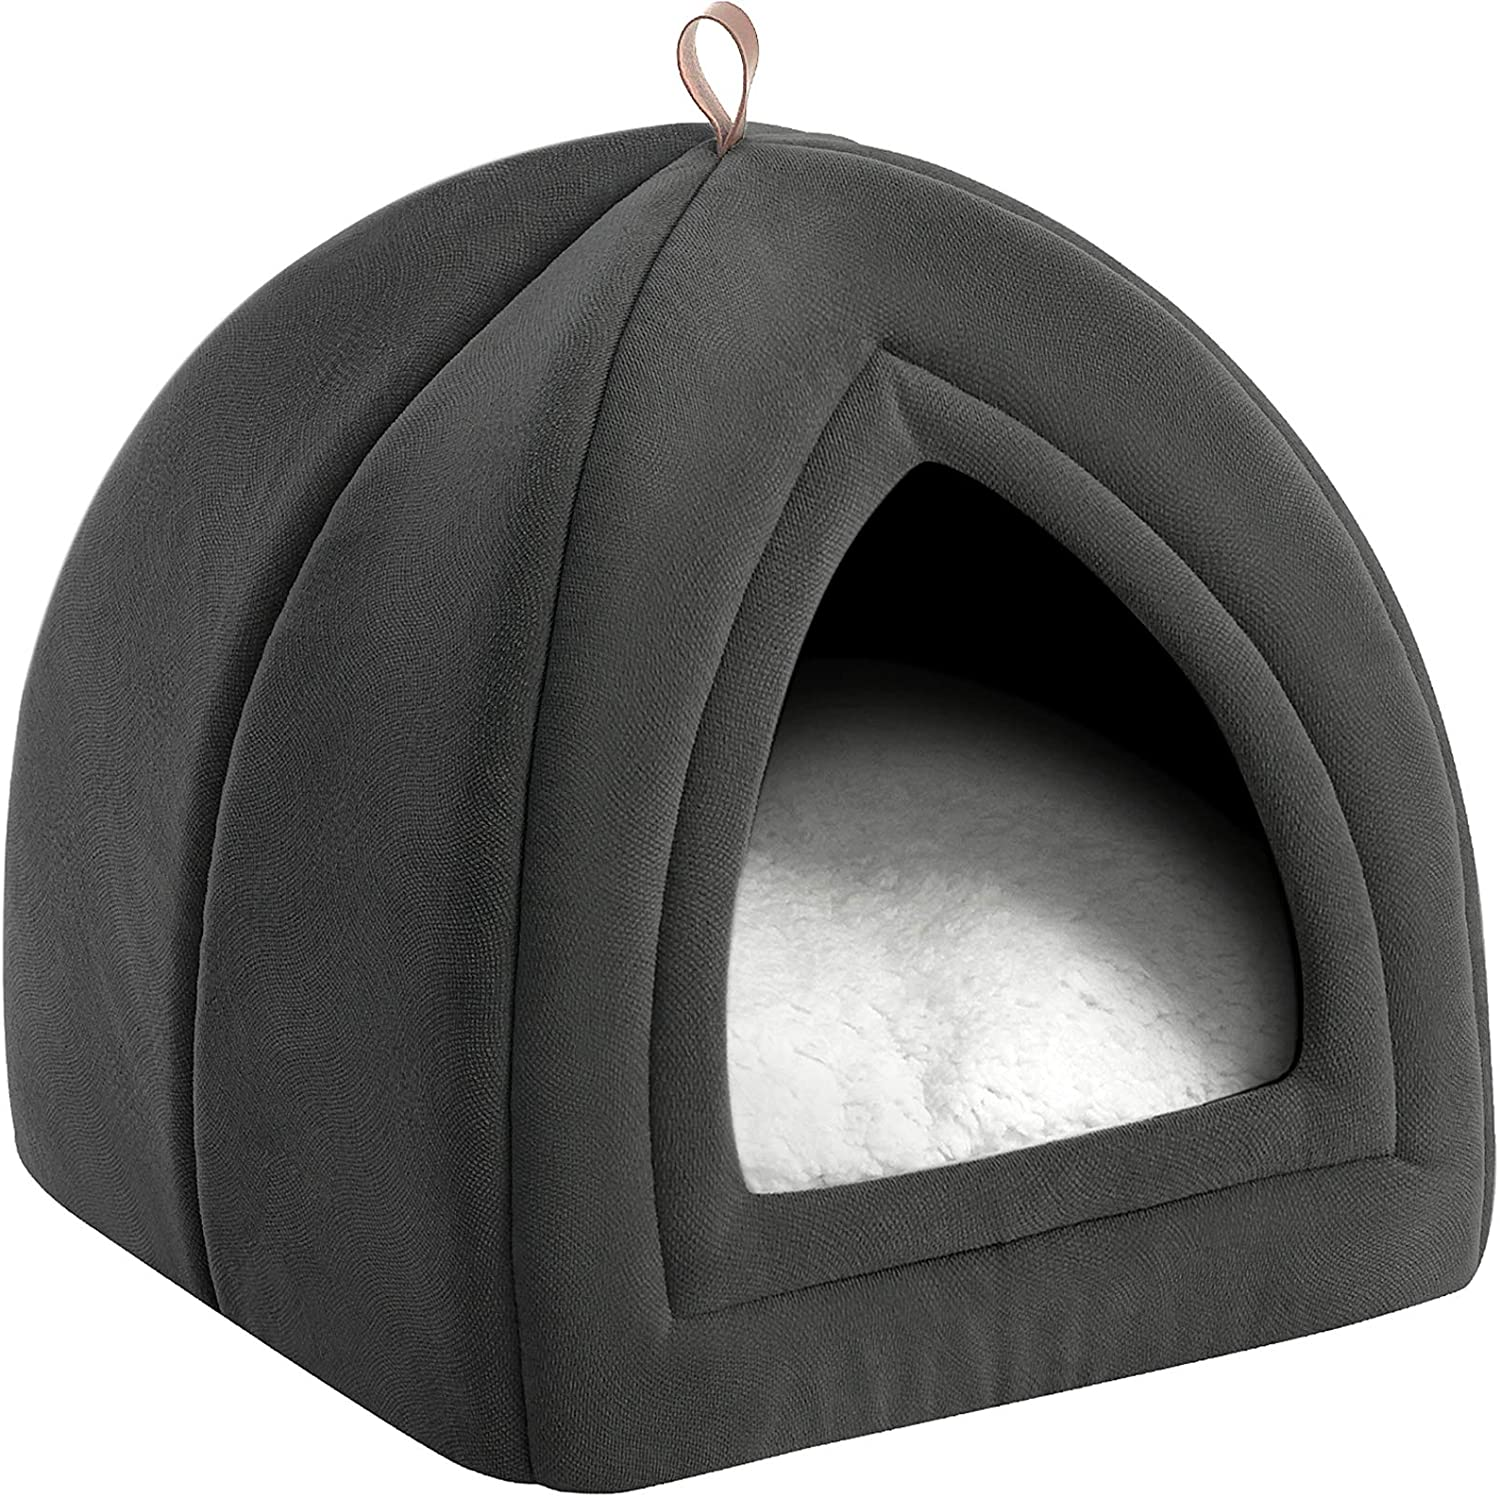 Bedsure Cat Bed For Indoor Cats Cat Houses Small Dog Bed 15 Inches 2 In 1 Cat Tent Kitten Bed Cat Hut Cat Cave With Removable Washable Cushioned Pillow Outdoor Dog